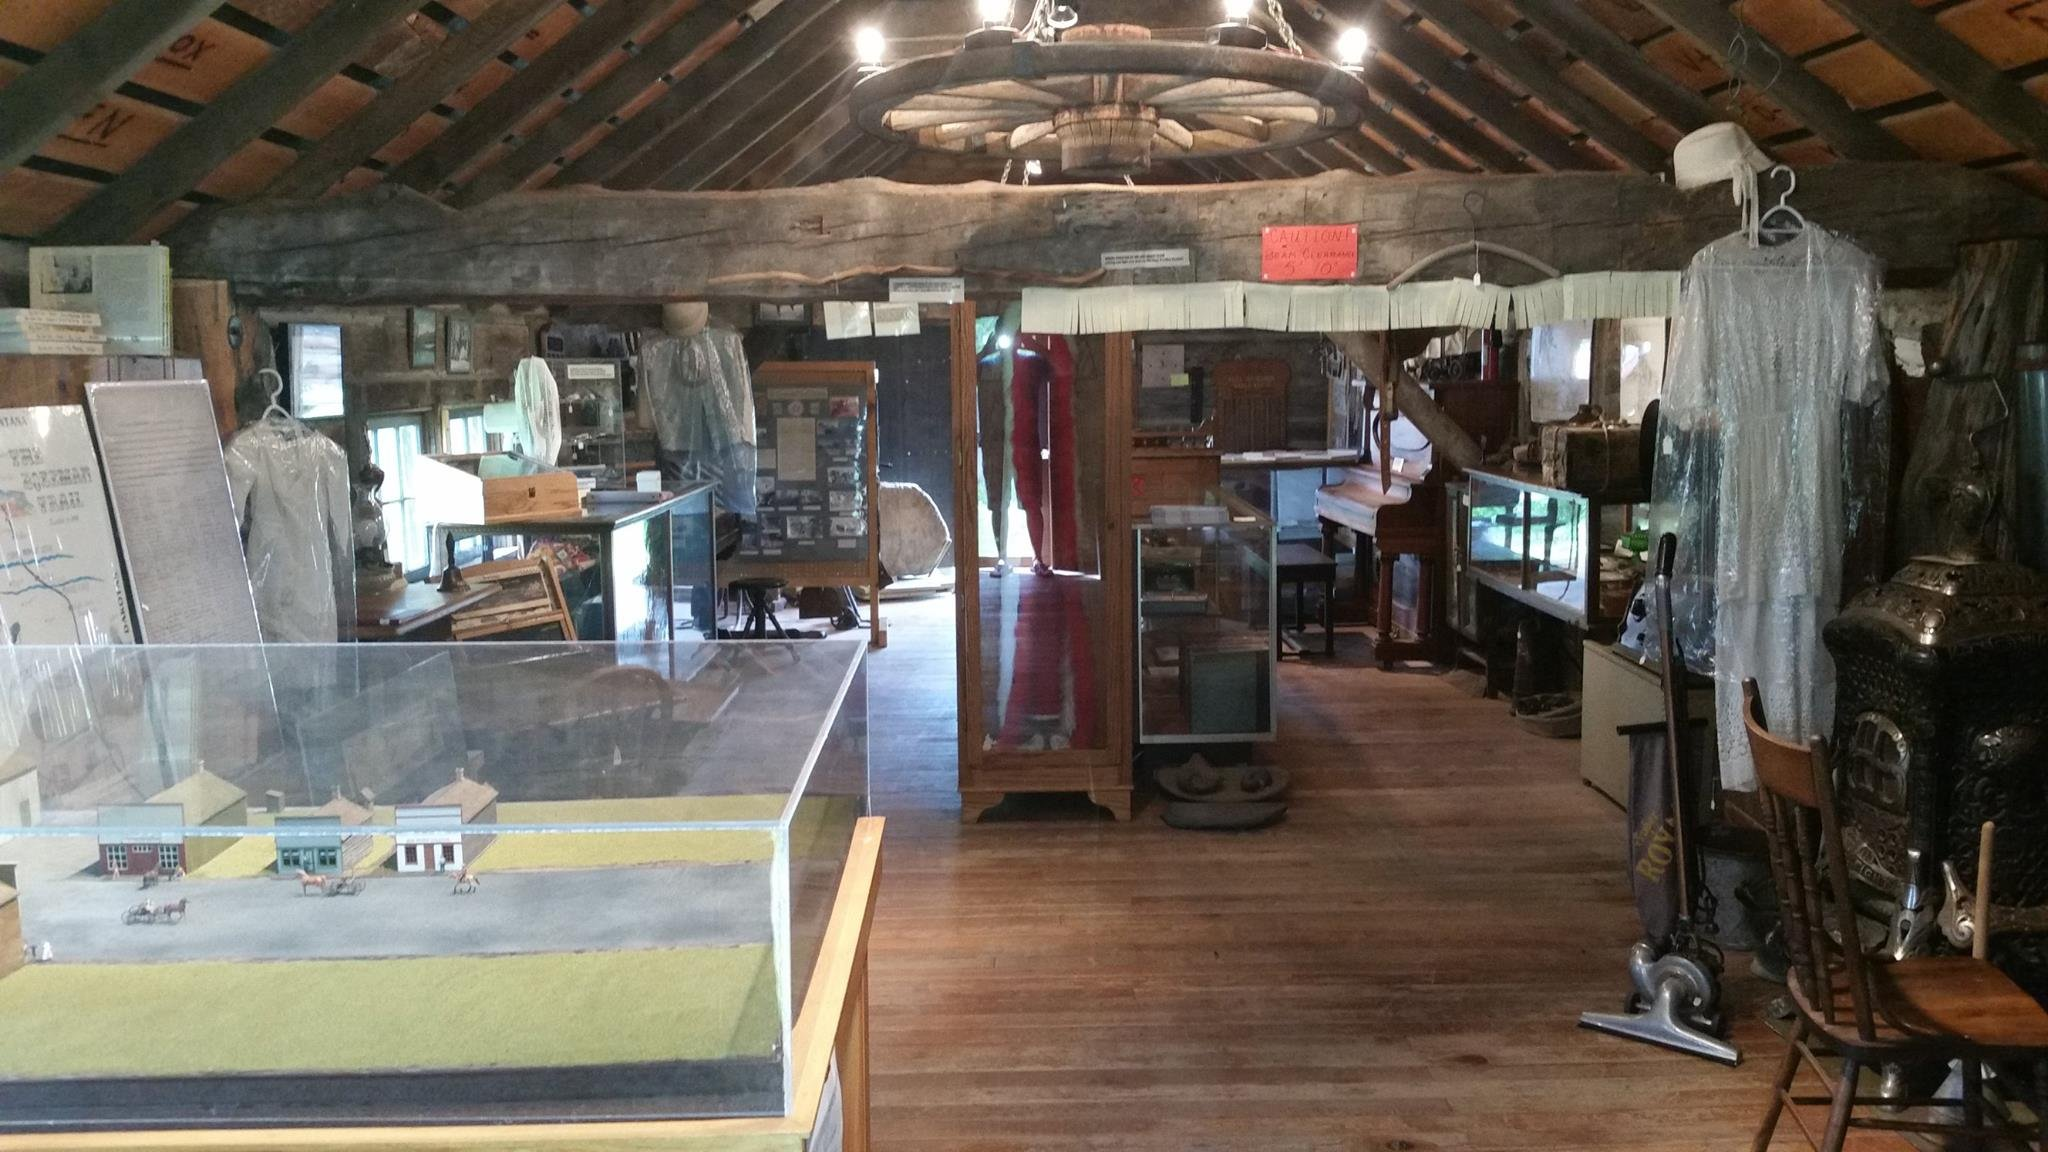 Inside the Bozeman Trail Museum